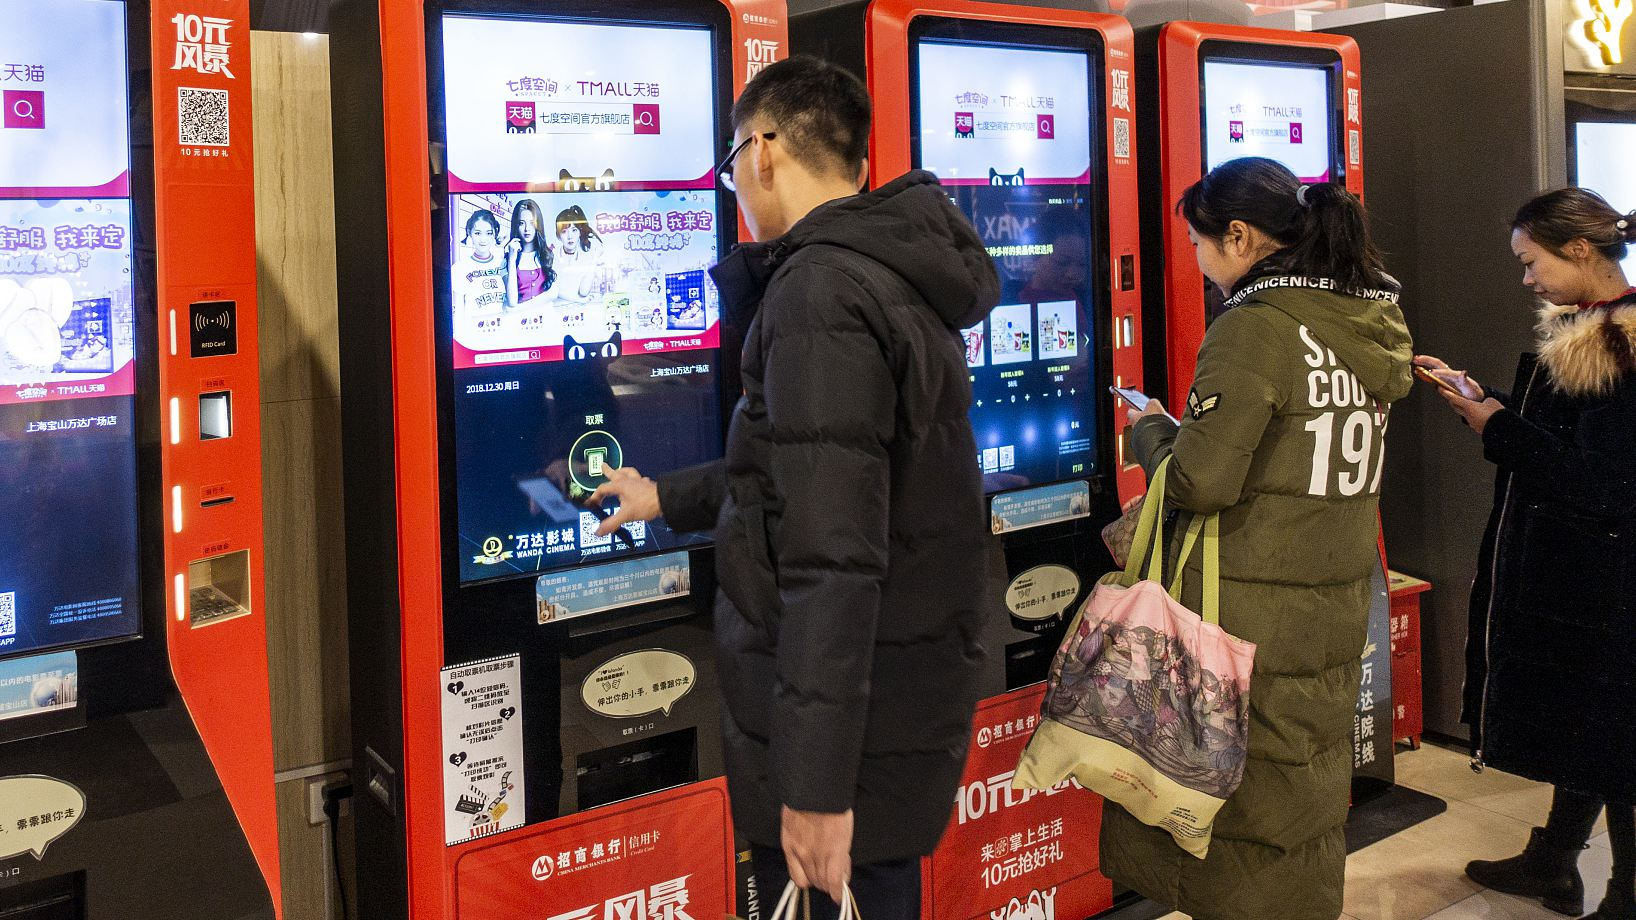 China's cultural consumption index continues to rise